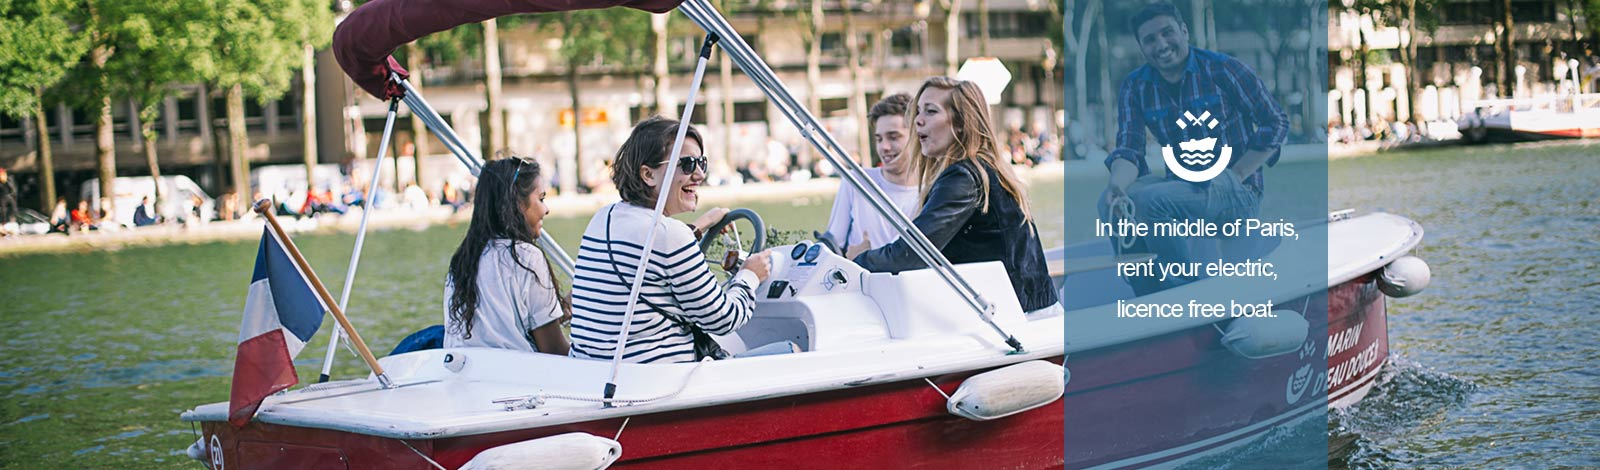 Friends sailing on electric, licence free boat